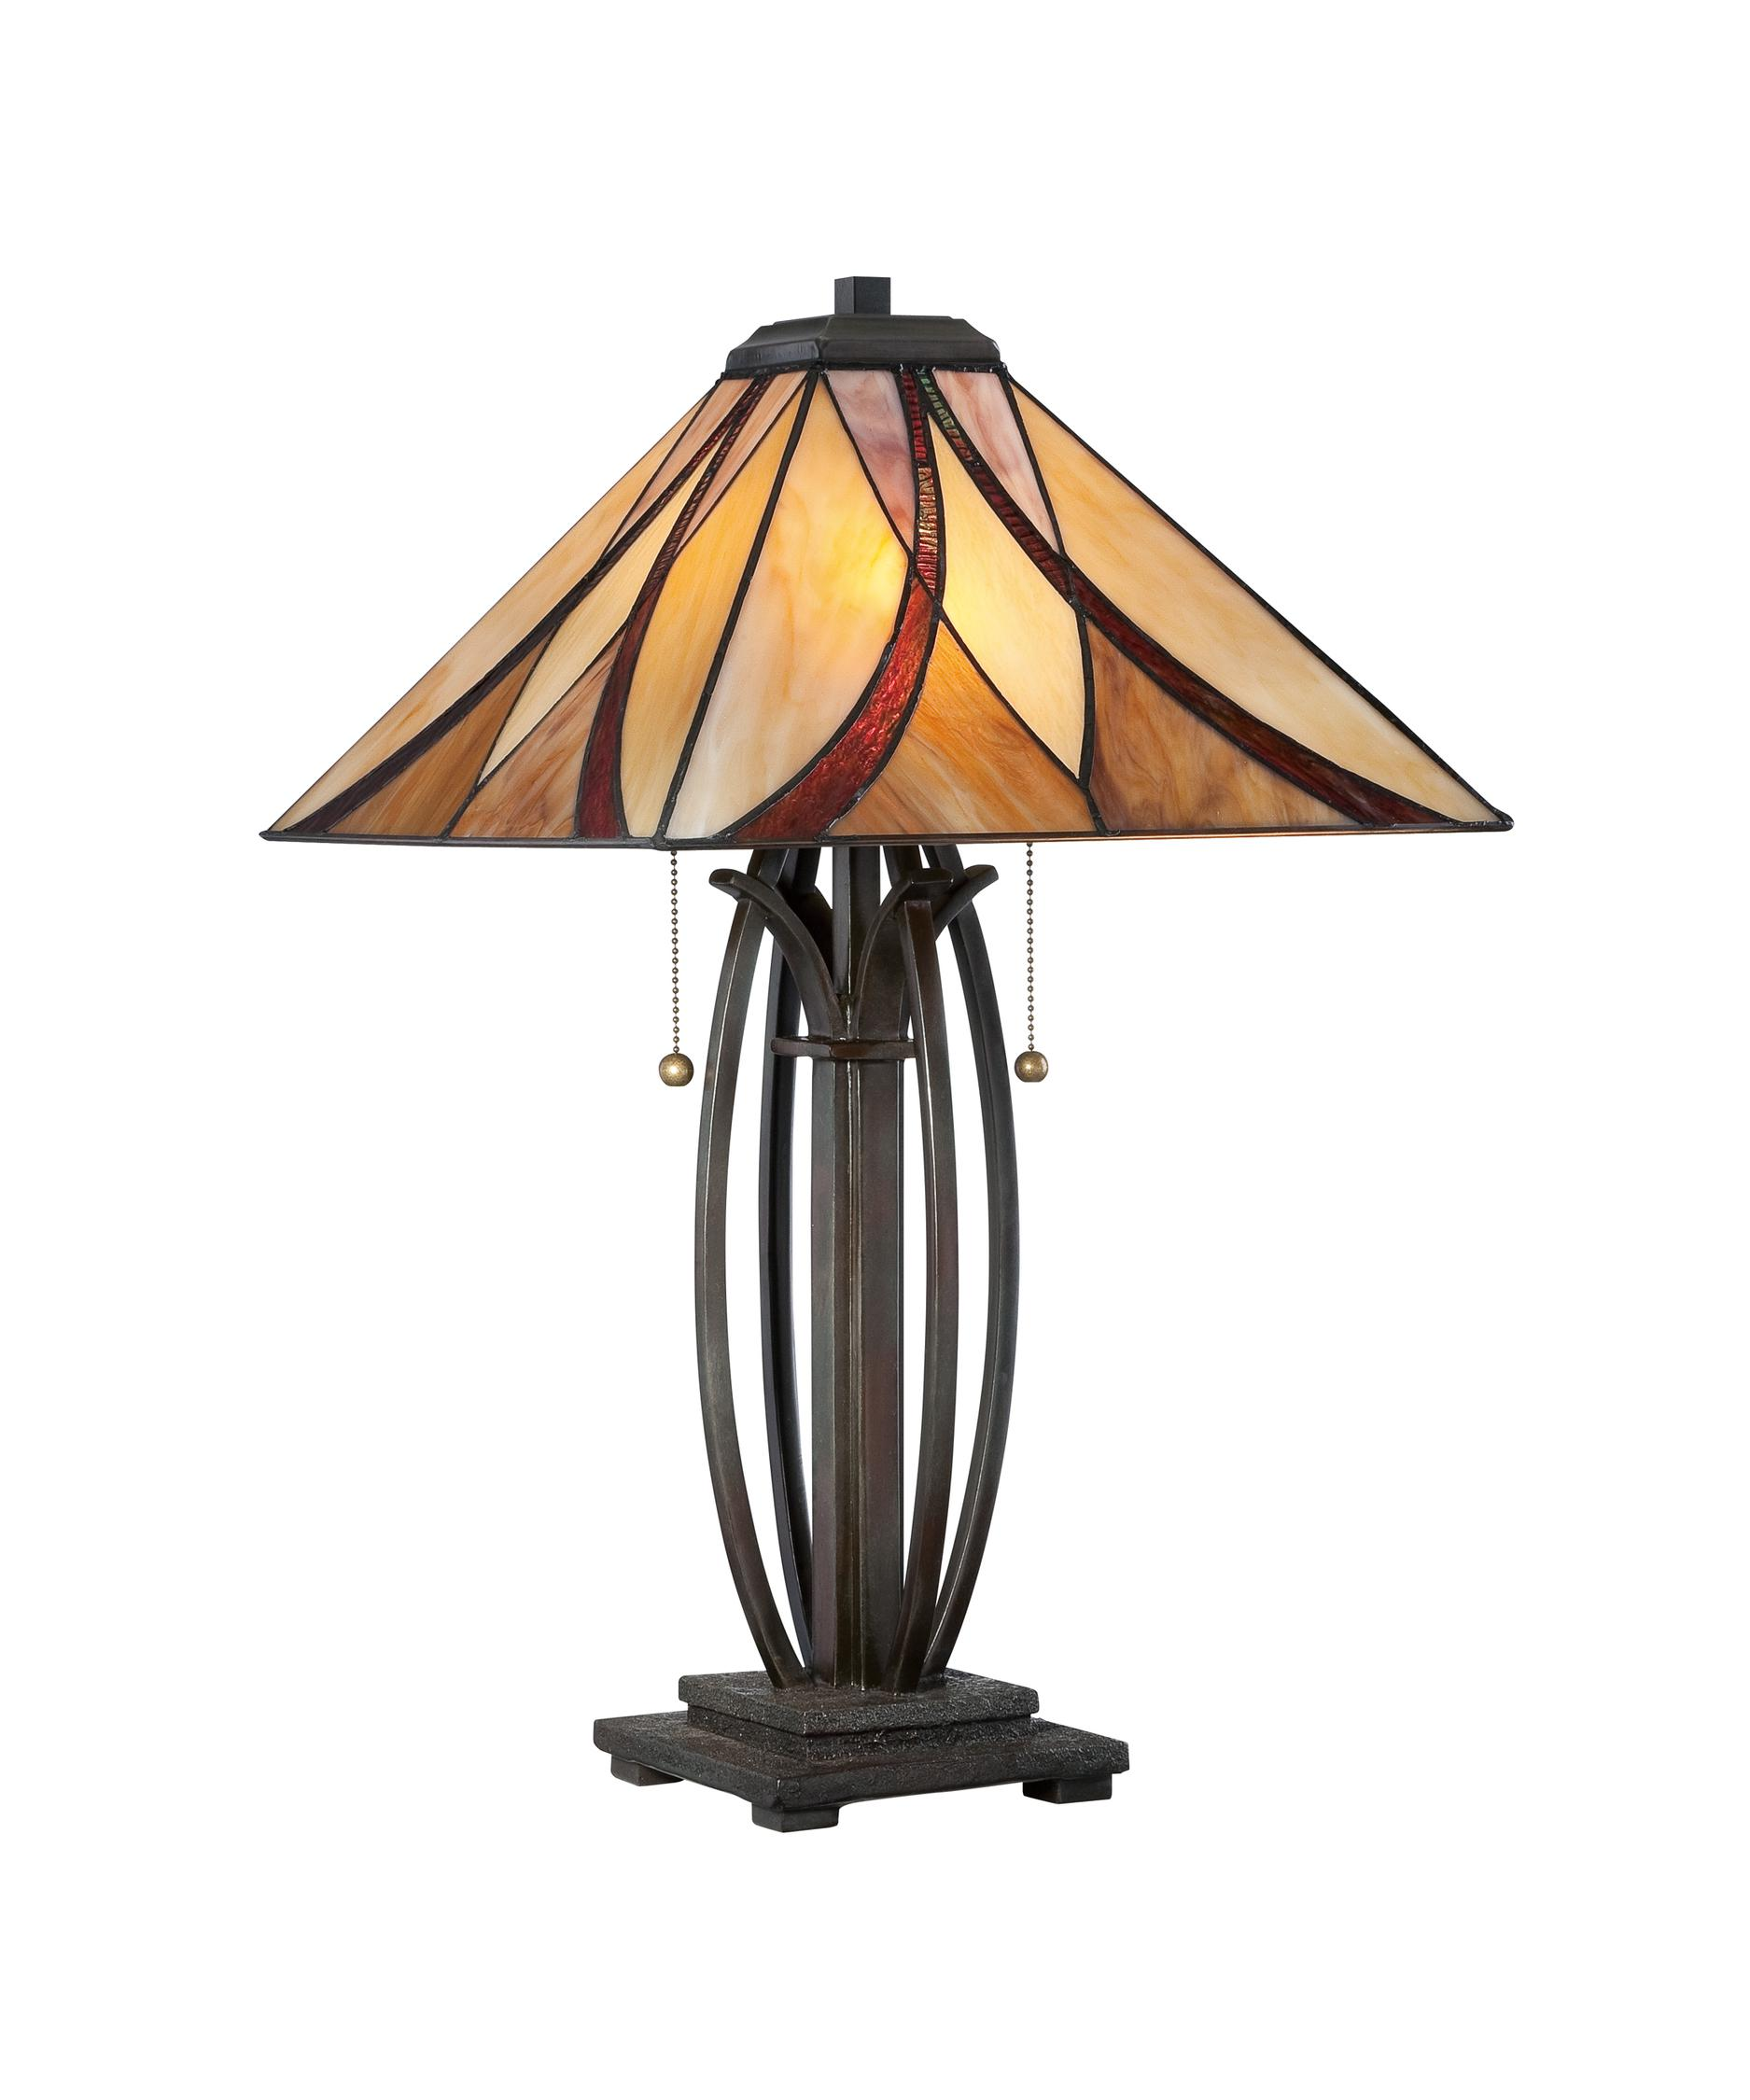 Quoizel Tf1180 25 Inch Table Lamp Capitol Lighting 1